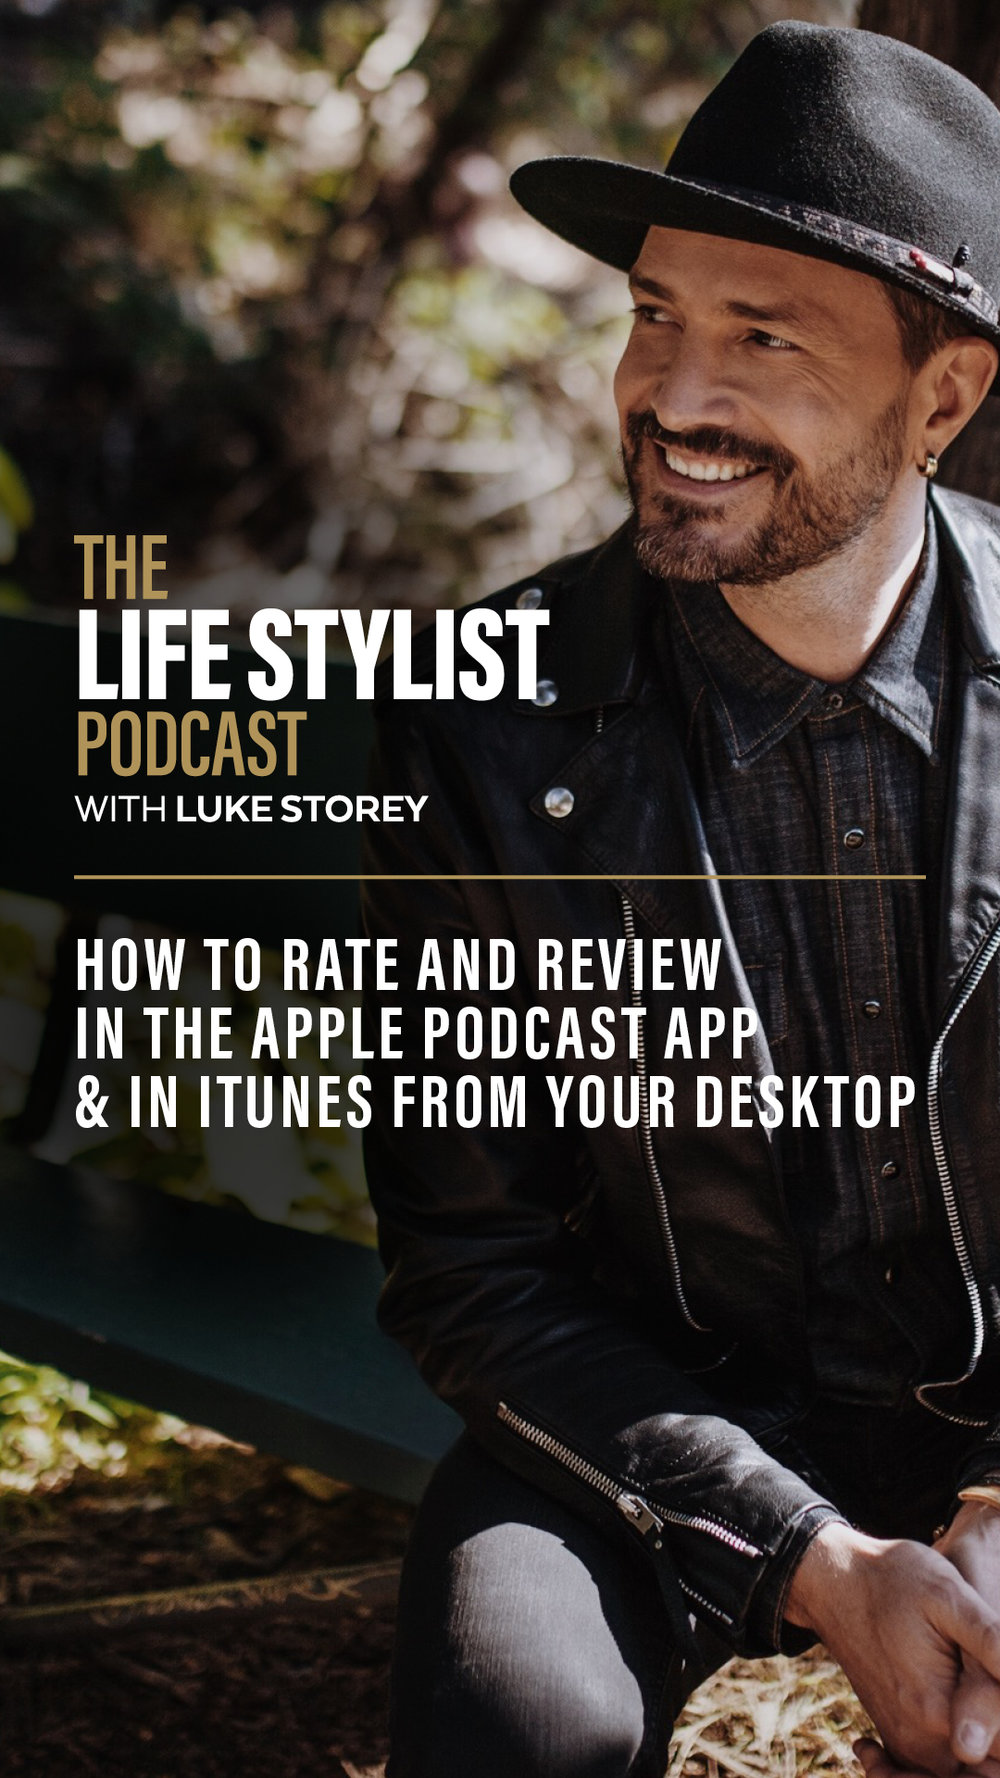 Luke Storey Podcast - How to Leave a Review - Itunes and Desktop.jpg